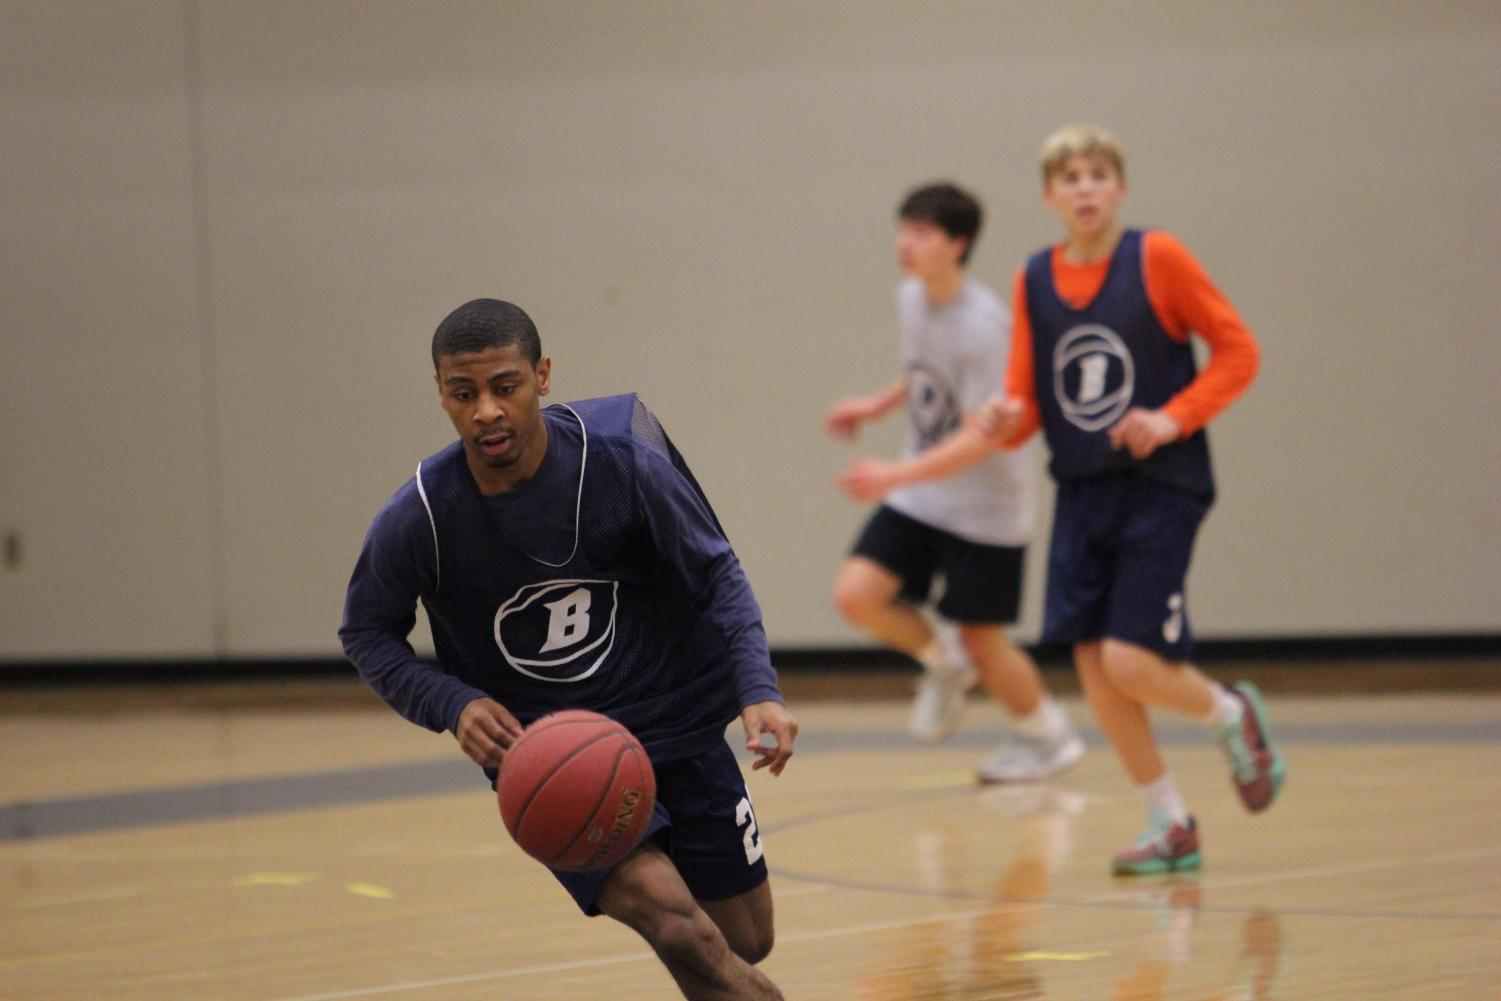 Decarlo Harris dribbles a ball down the basketball court during a morning practice (Adrian Maddox).